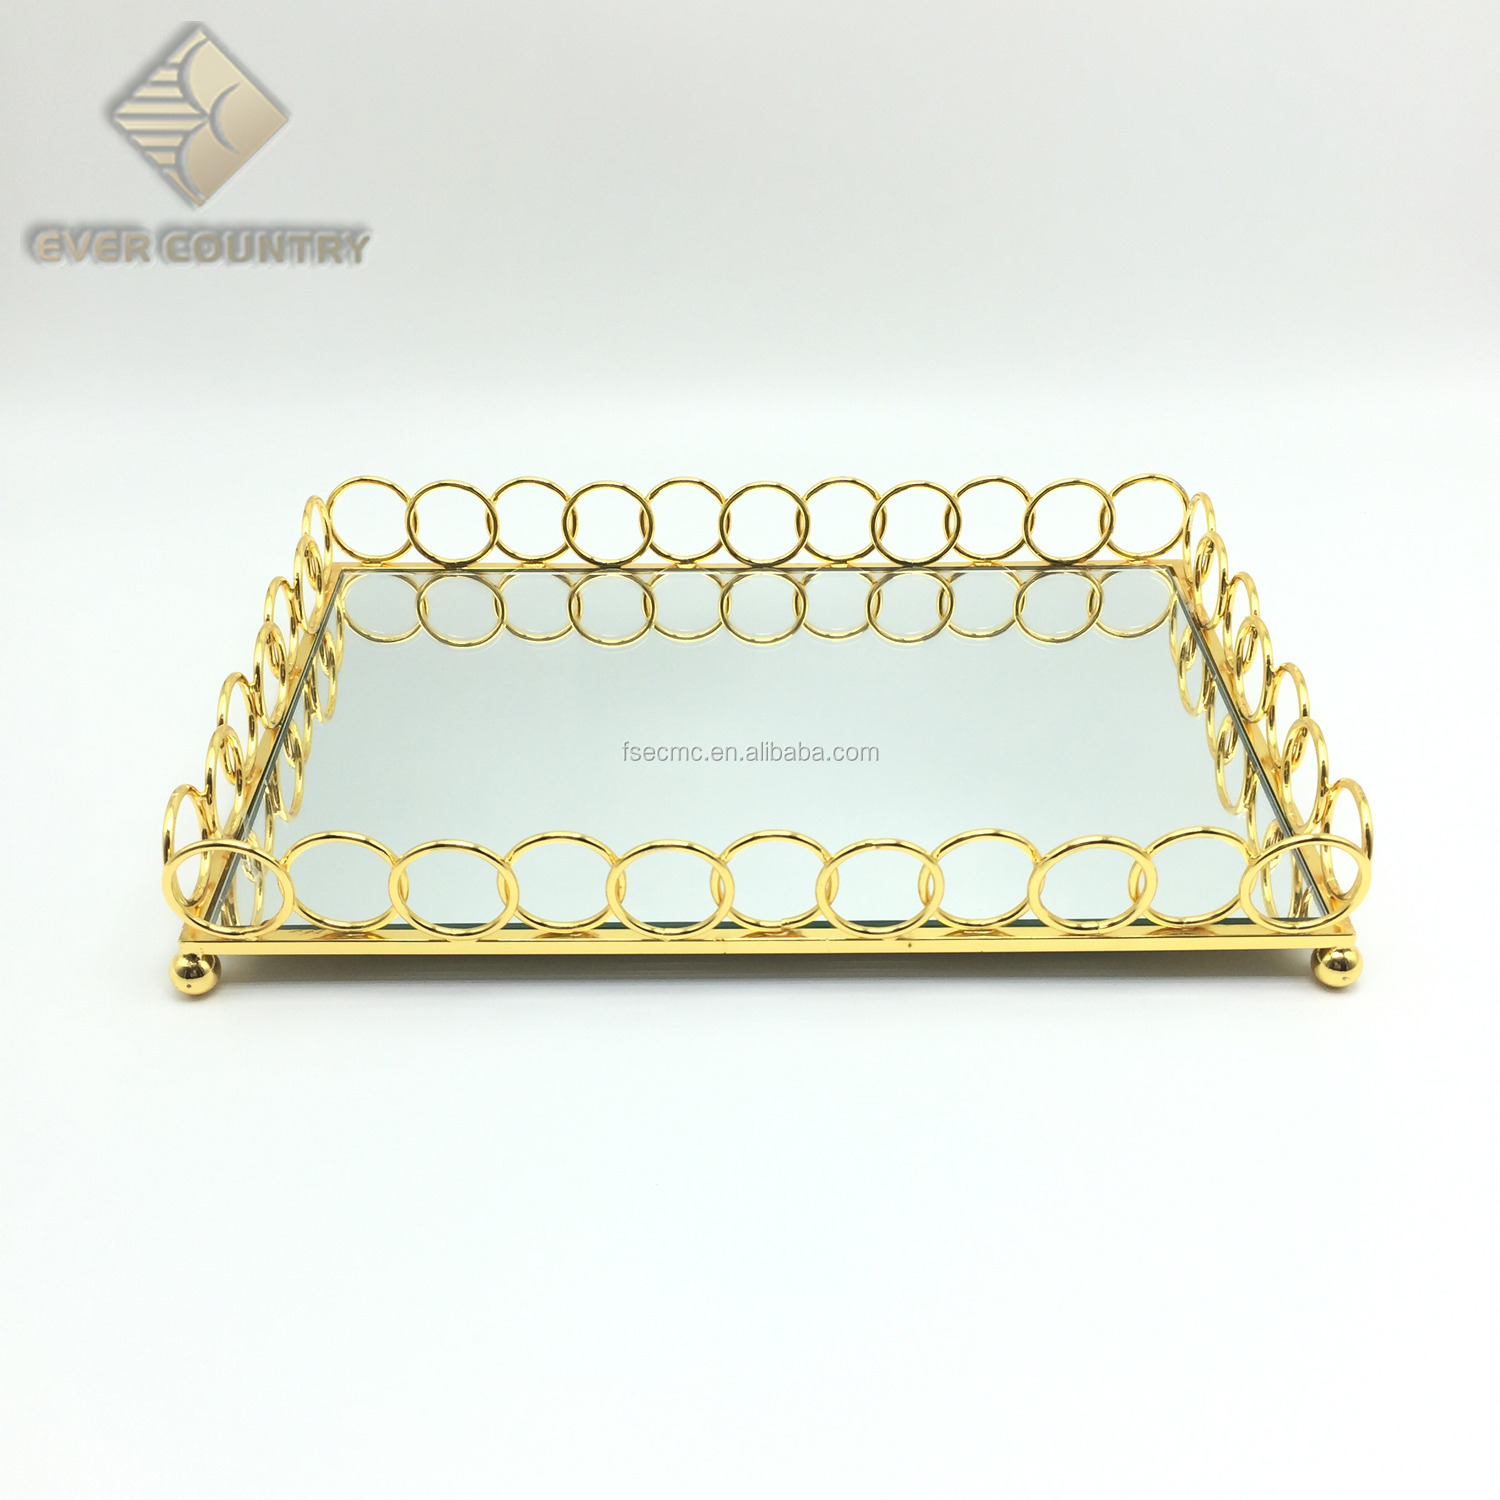 12 Inch rectangular gold metal glass mirror serving tray for wedding serving